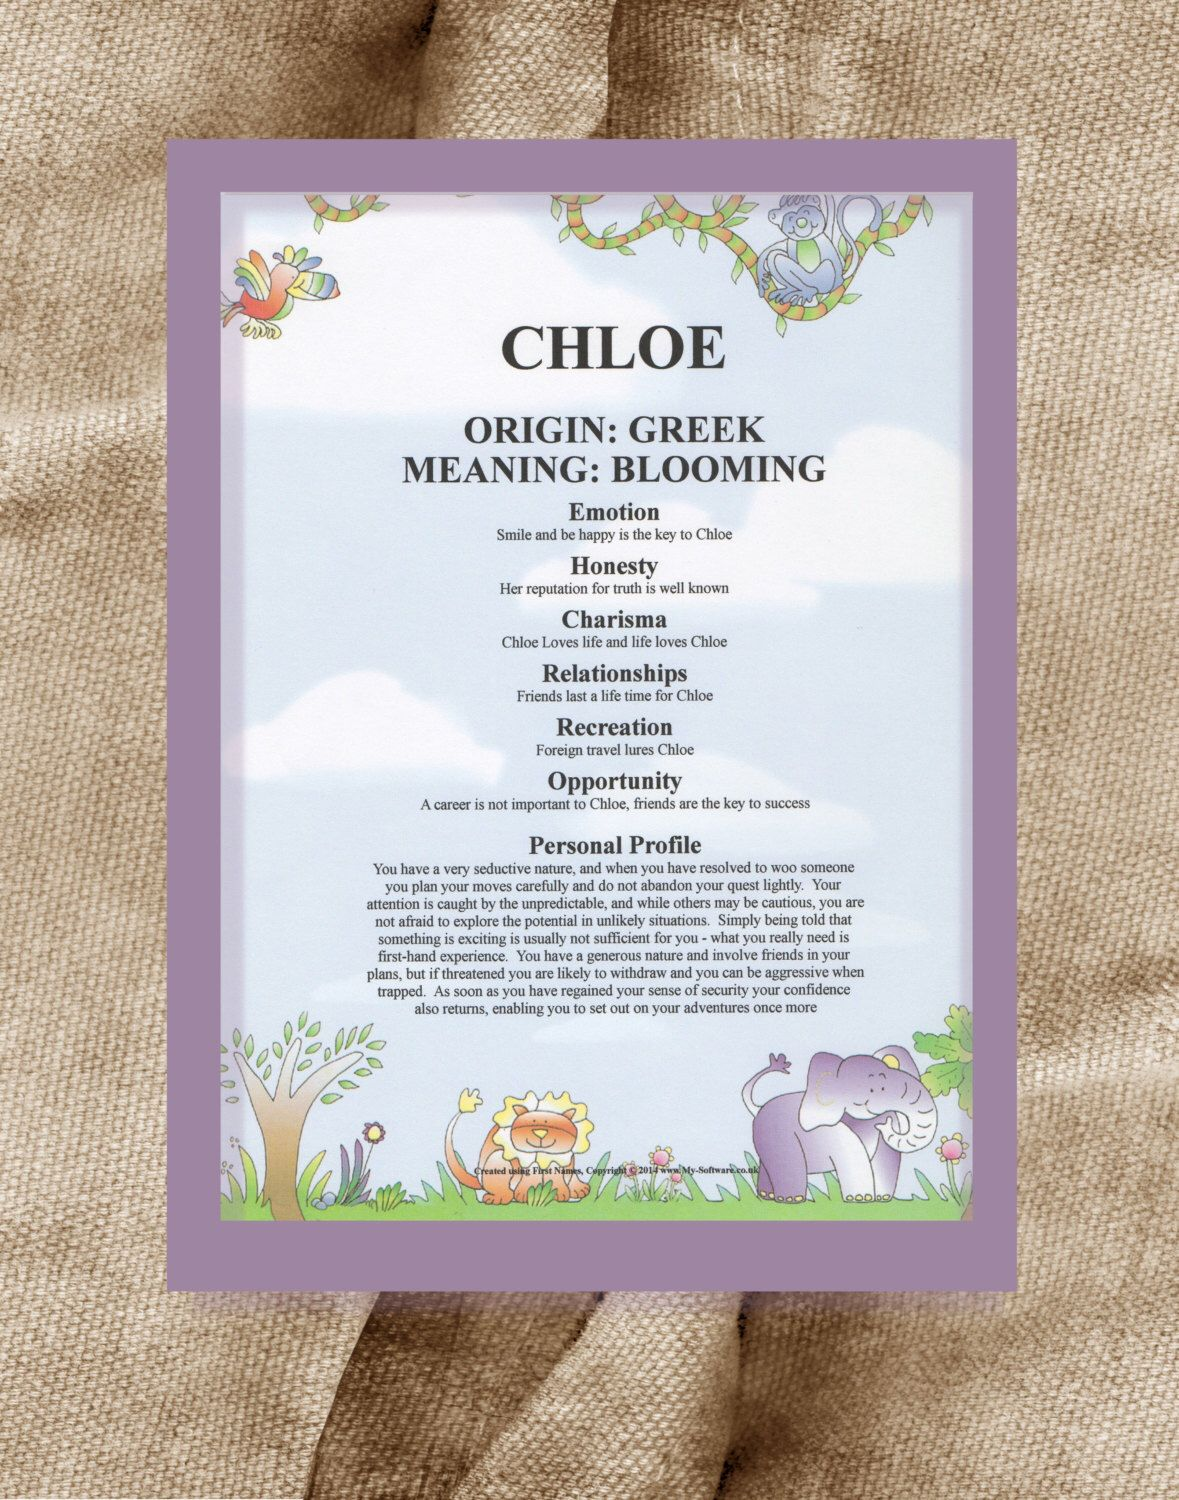 Name meaning first name meaning gift baby name meaning gift by name meaning first name meaning gift baby name meaning gift by scrapits on etsy negle Choice Image